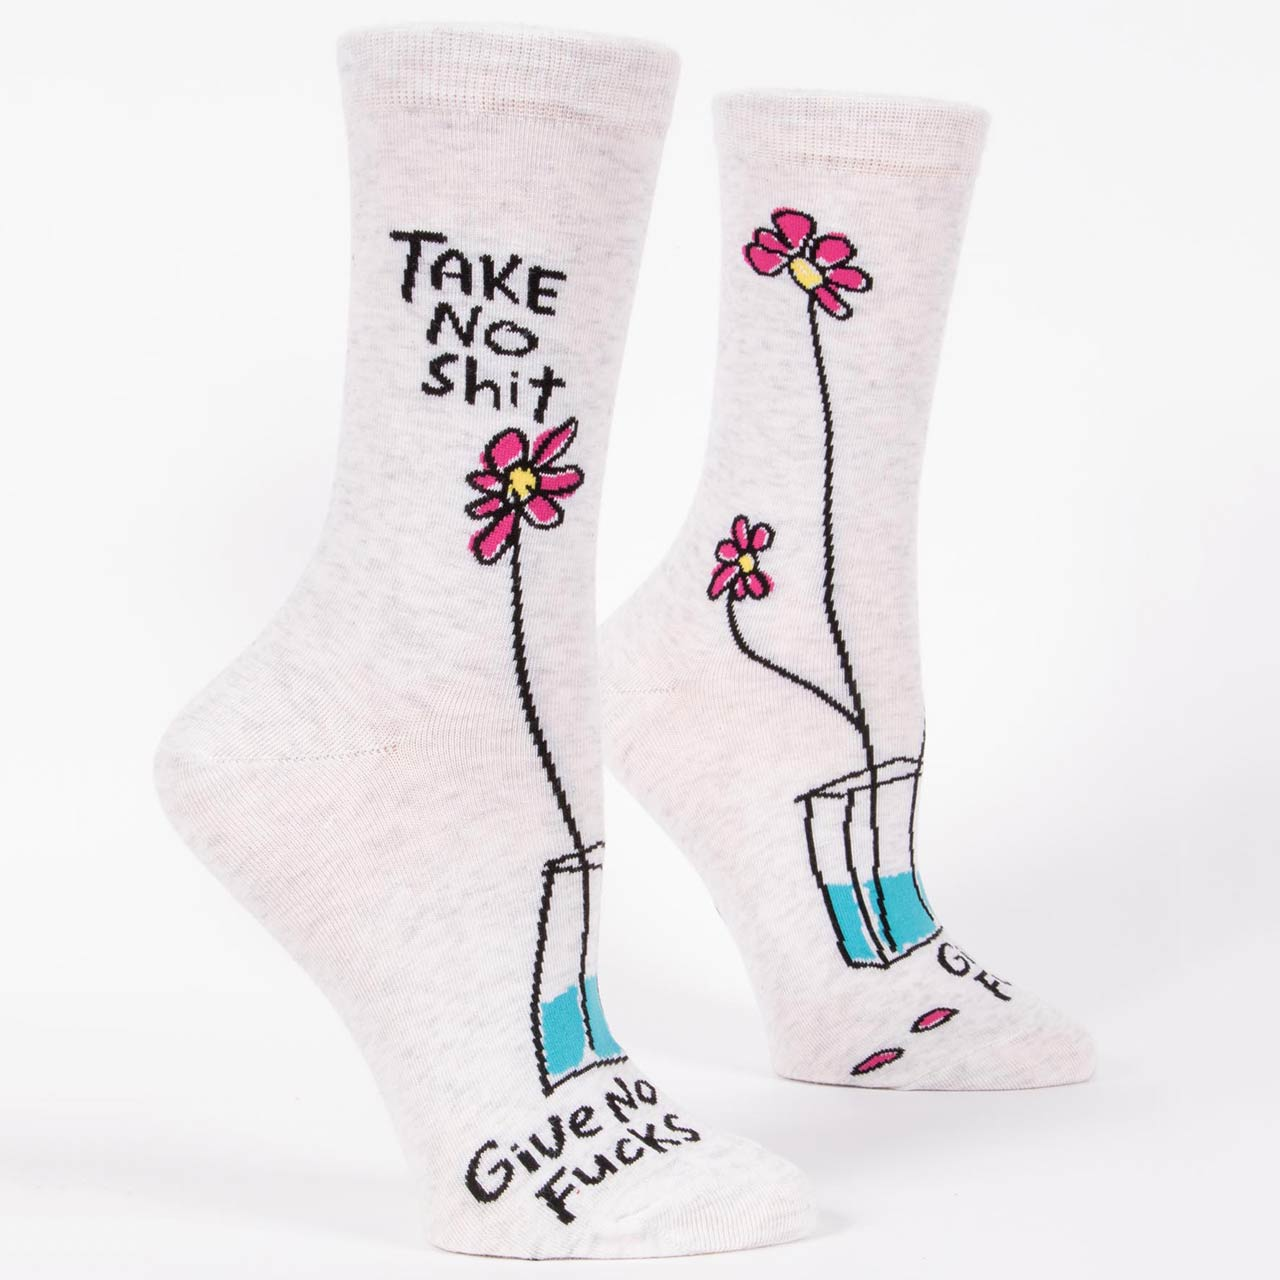 Blue Q Women's Socks 'Take No Shit Give No Fucks' | the design gift shop